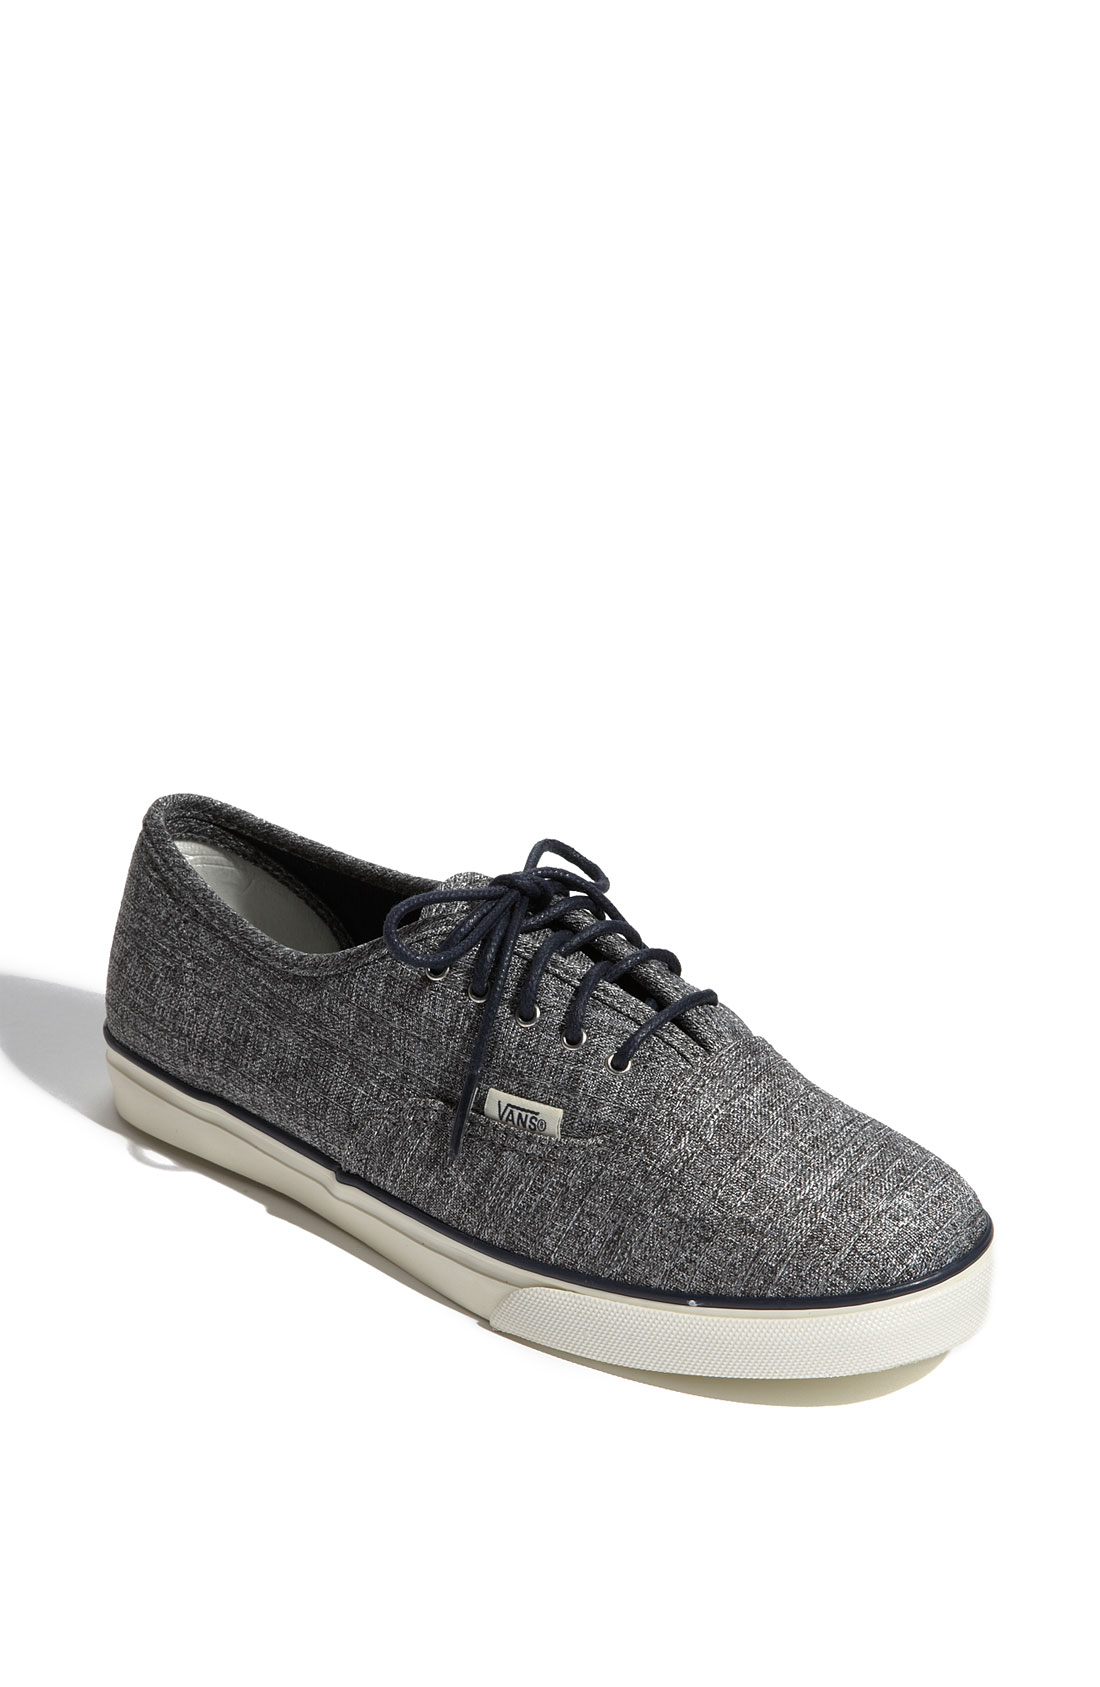 vans authentic lo pro ca sneaker in gray grey lyst. Black Bedroom Furniture Sets. Home Design Ideas